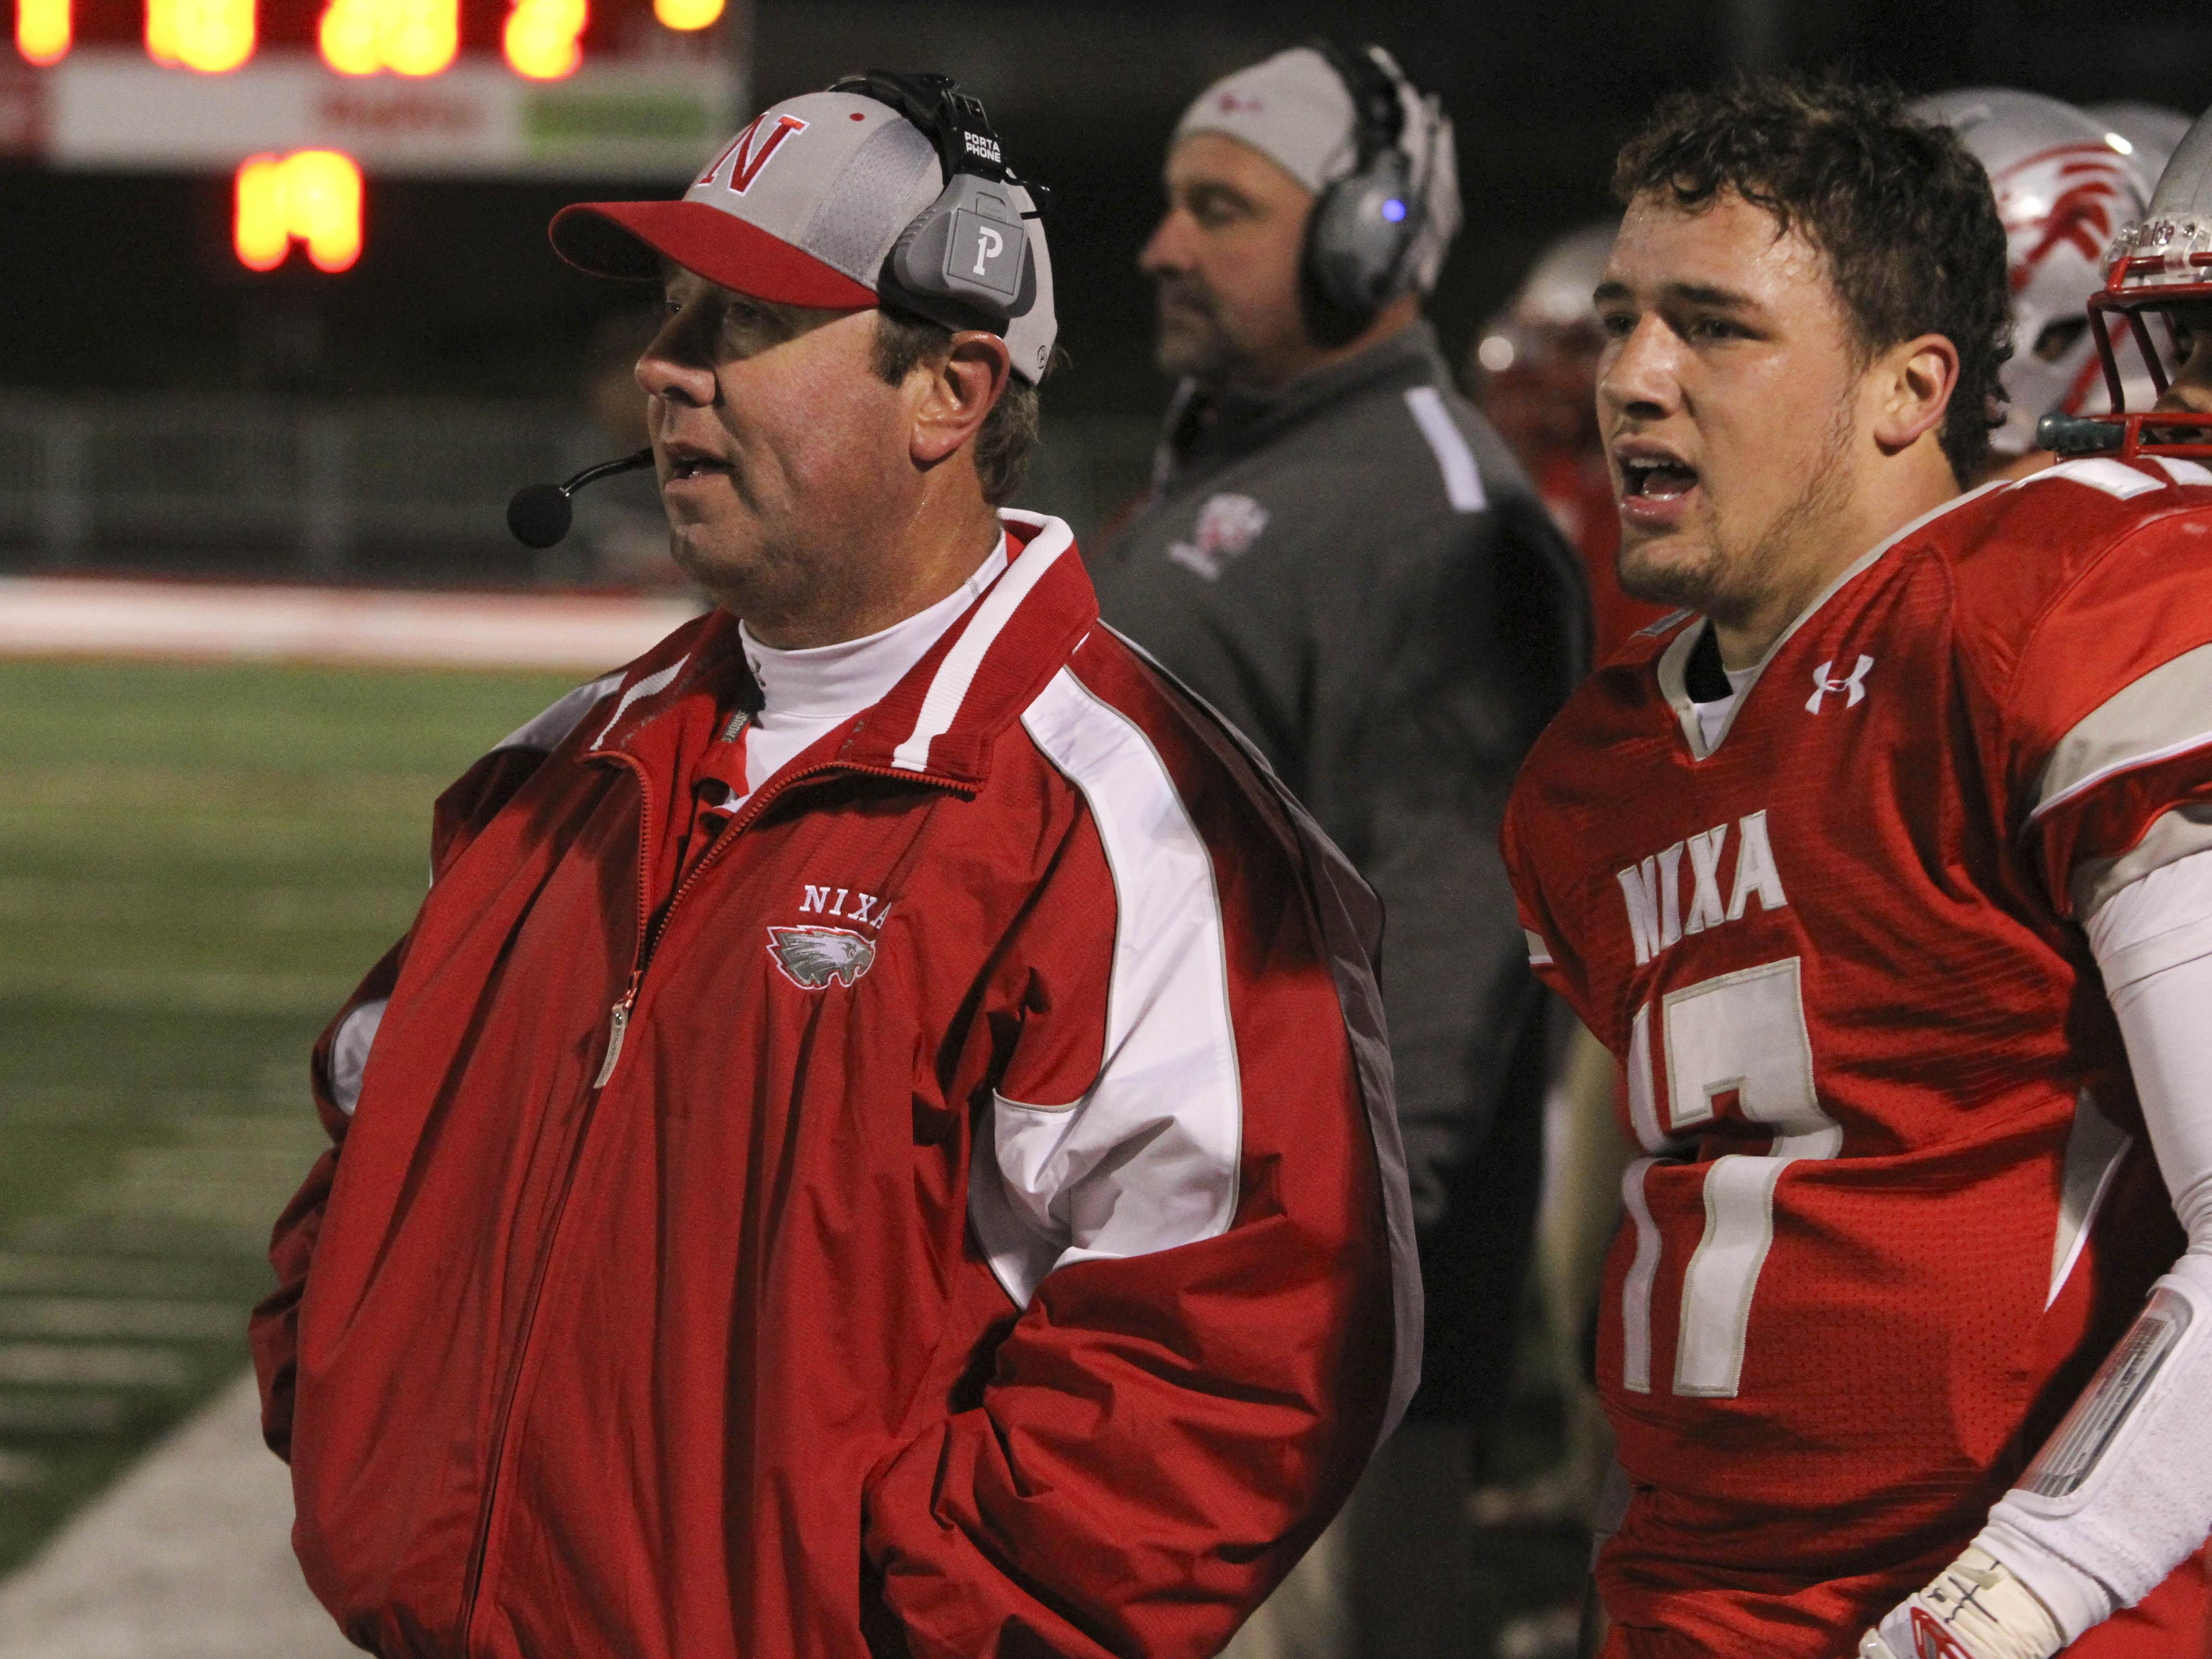 From left, Nixa football coach Richard Rehagen and QB/S Logan Tyler on the sideline at Eagle Stadium during a 2014 game.